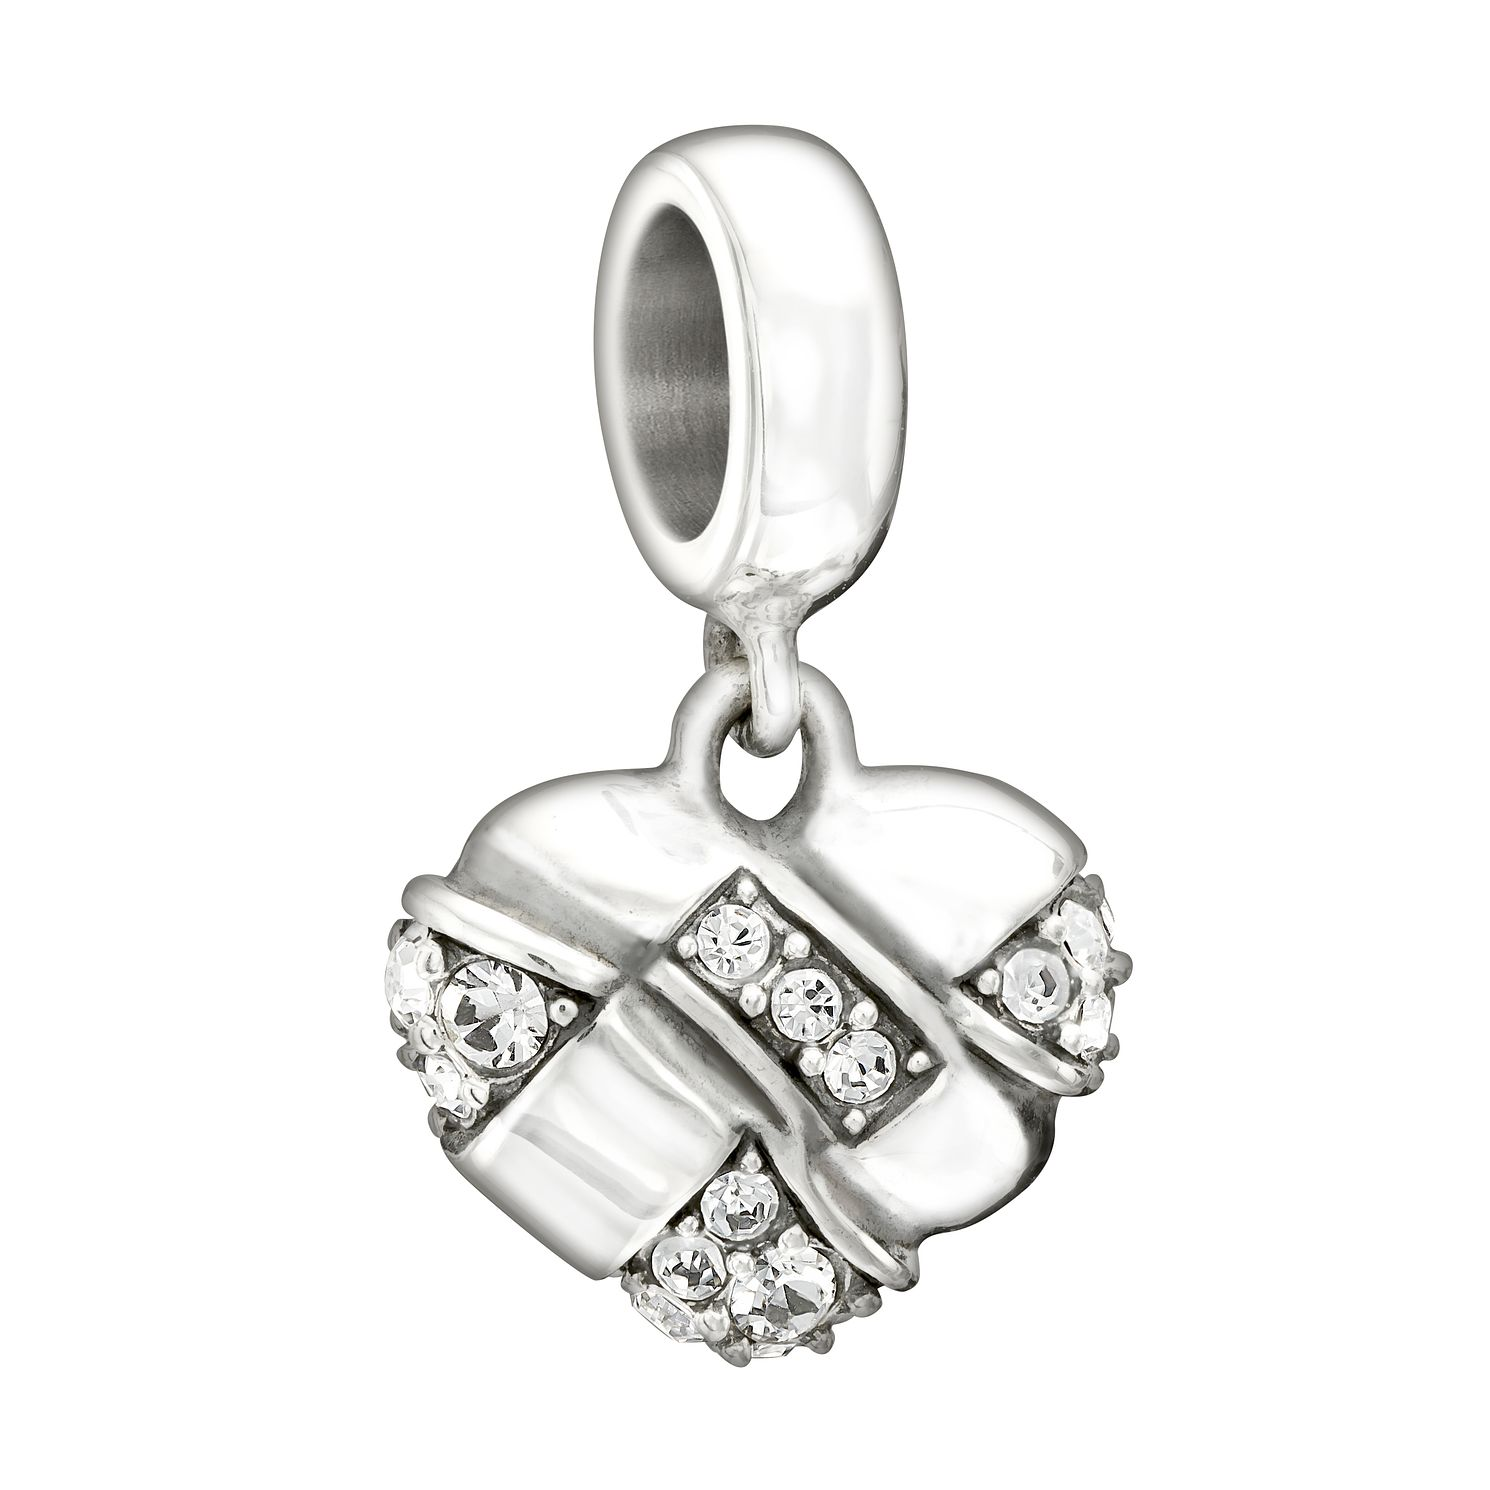 Chamilia Silver Swarovski Crystal Woven Heart Charm - Product number 1605054